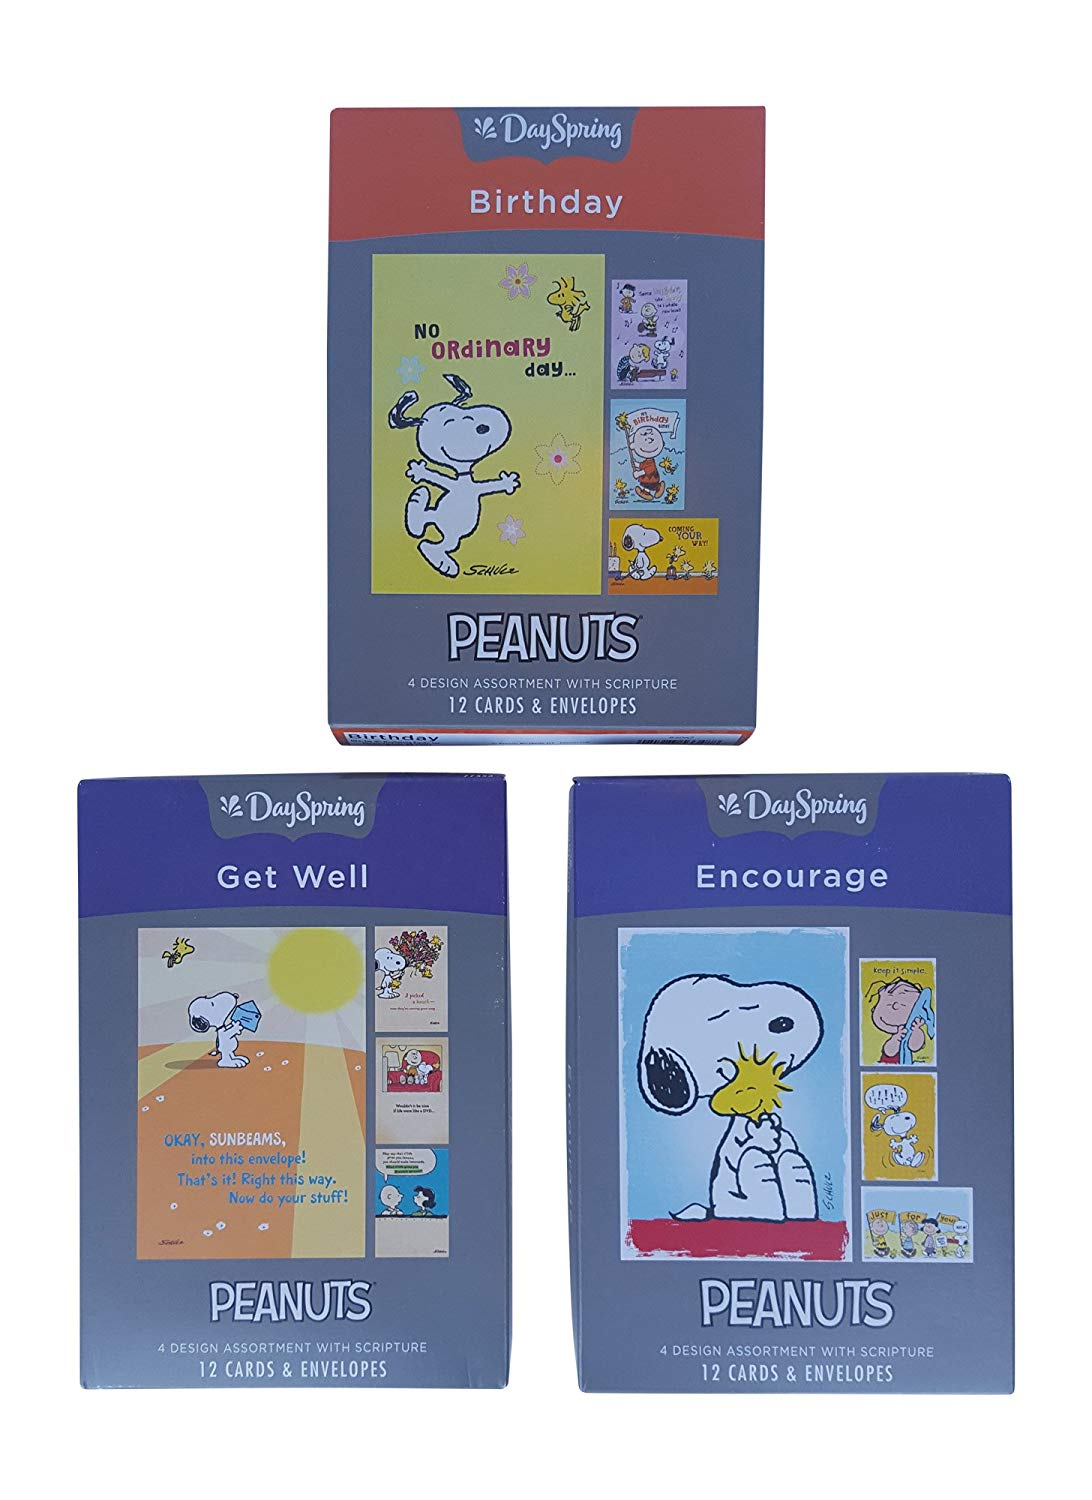 Dayspring Peanuts Boxed Cards Birthday Encouragement Get Well 36 With Envelopes